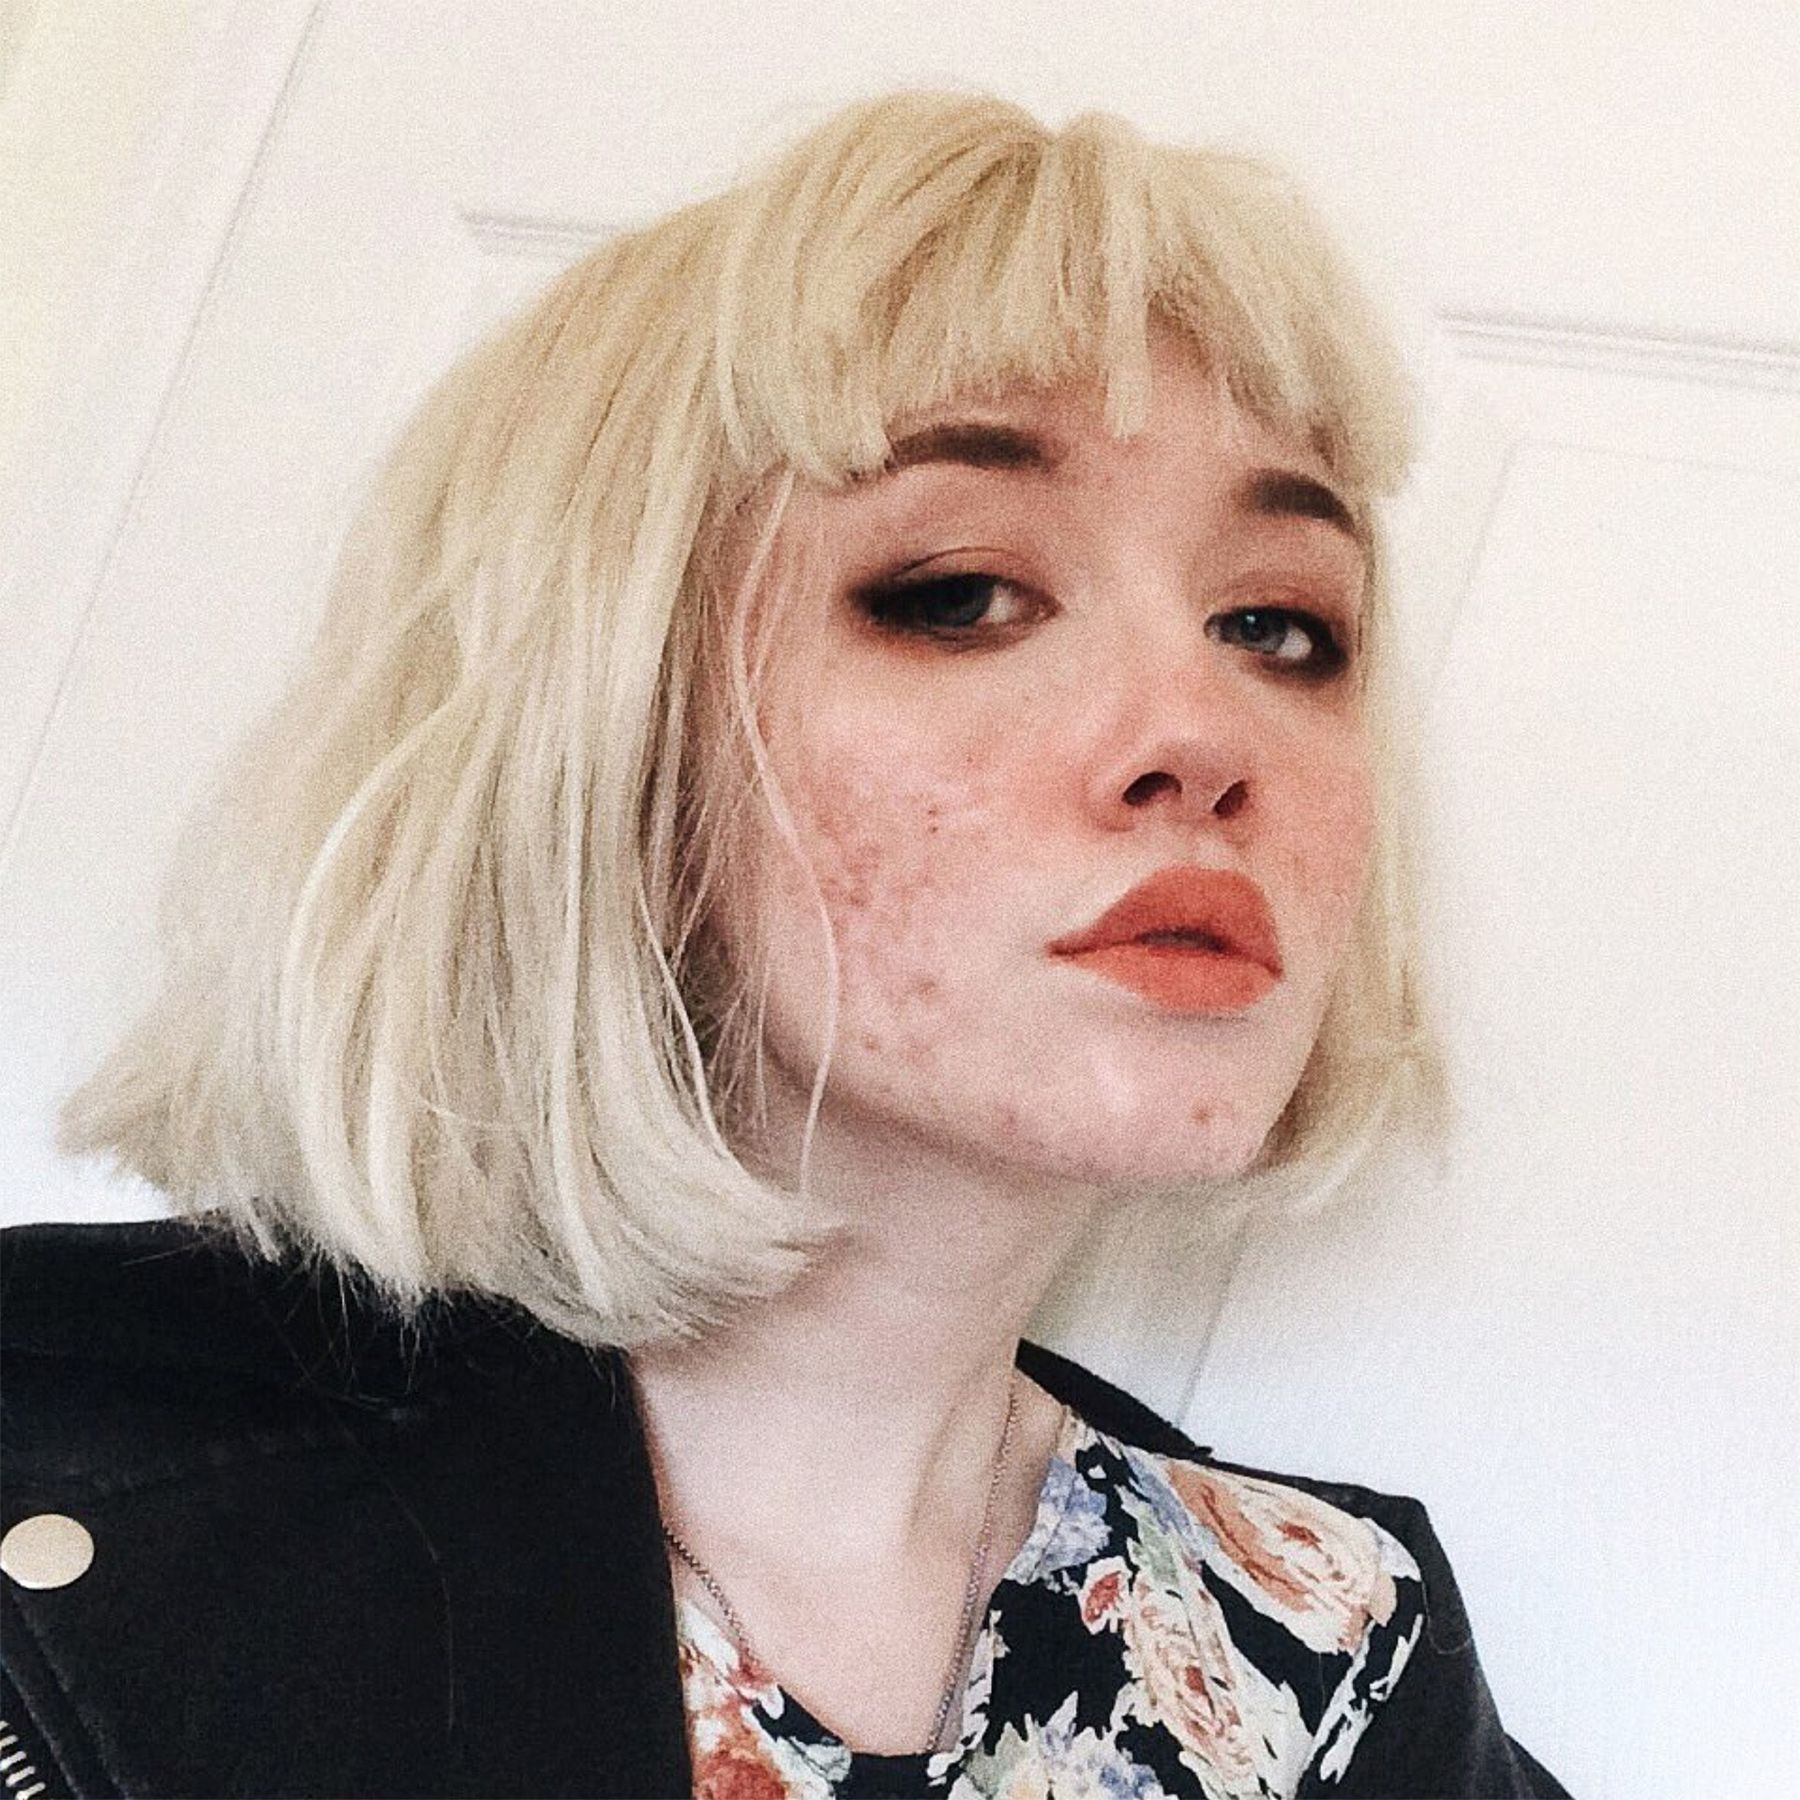 This teenage girl is encouraging others to show off their acne #people